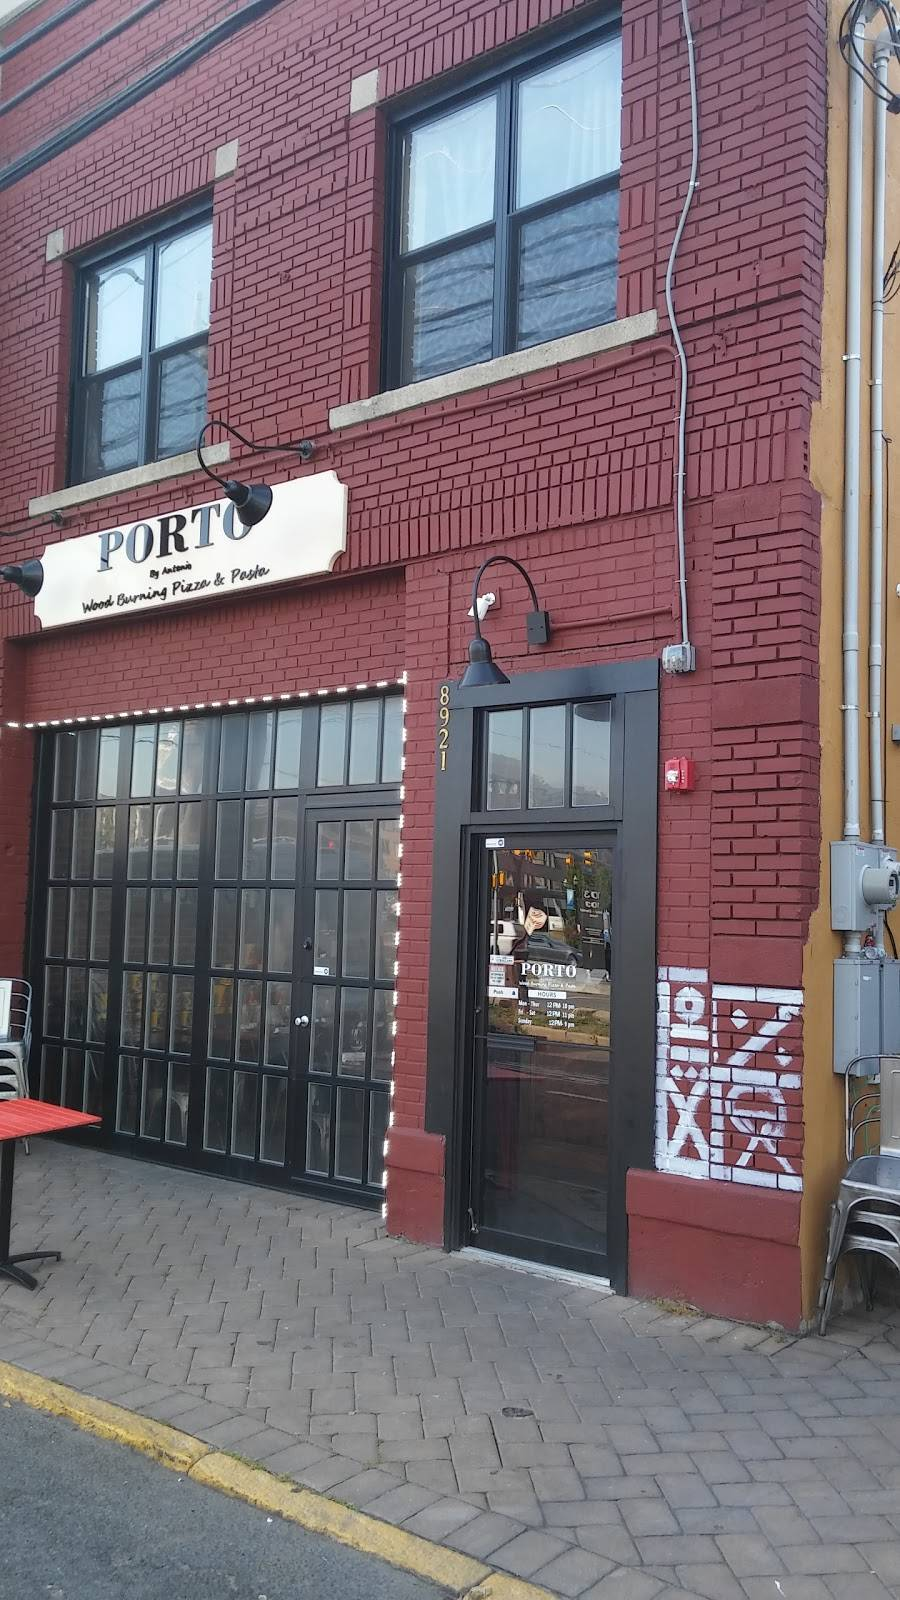 Porto | meal takeaway | 8921 Old River Rd, North Bergen, NJ 07047, USA | 2019417107 OR +1 201-941-7107